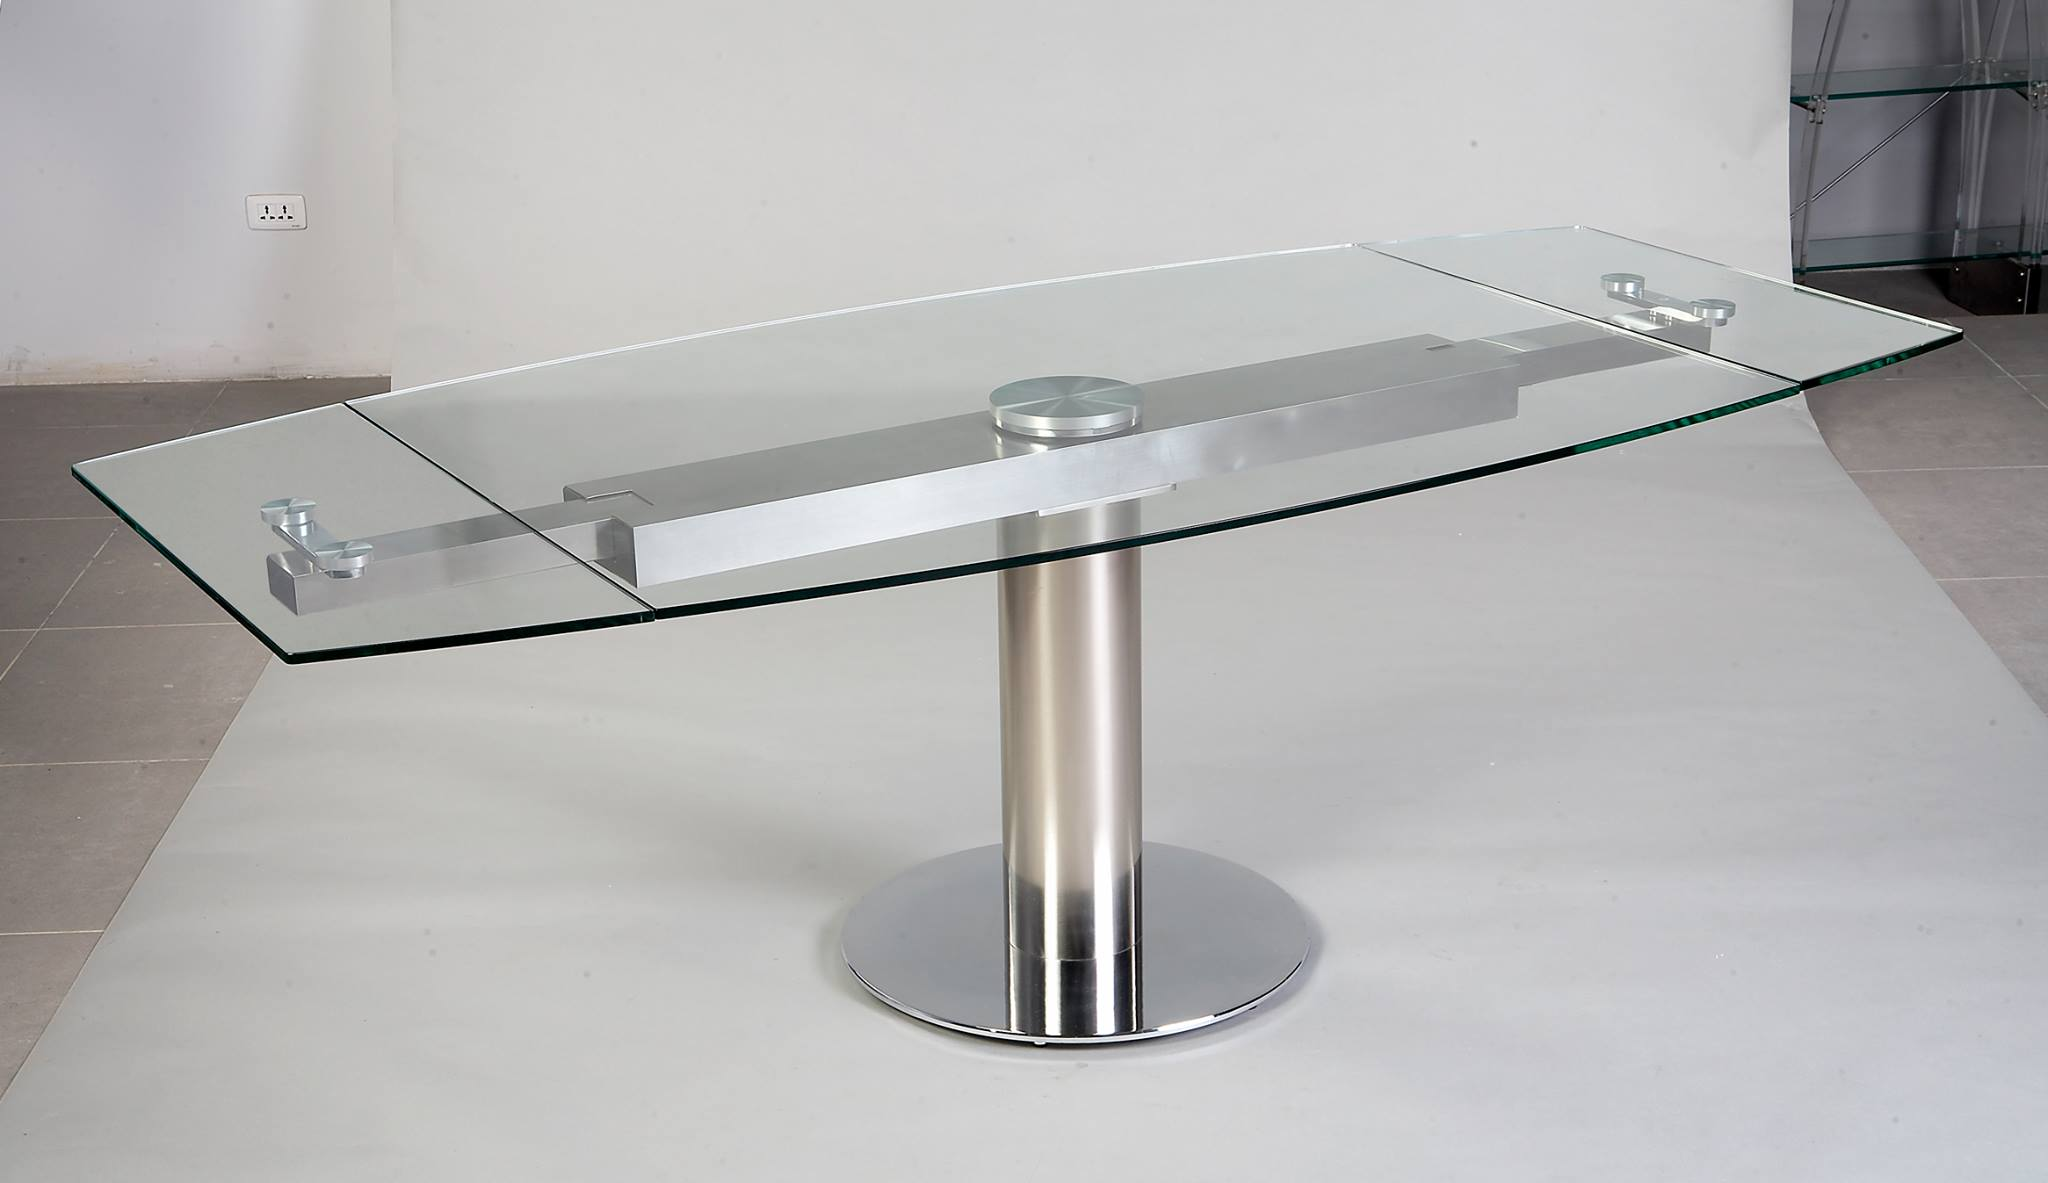 Table verre pied central allonge for Pied de cuisine